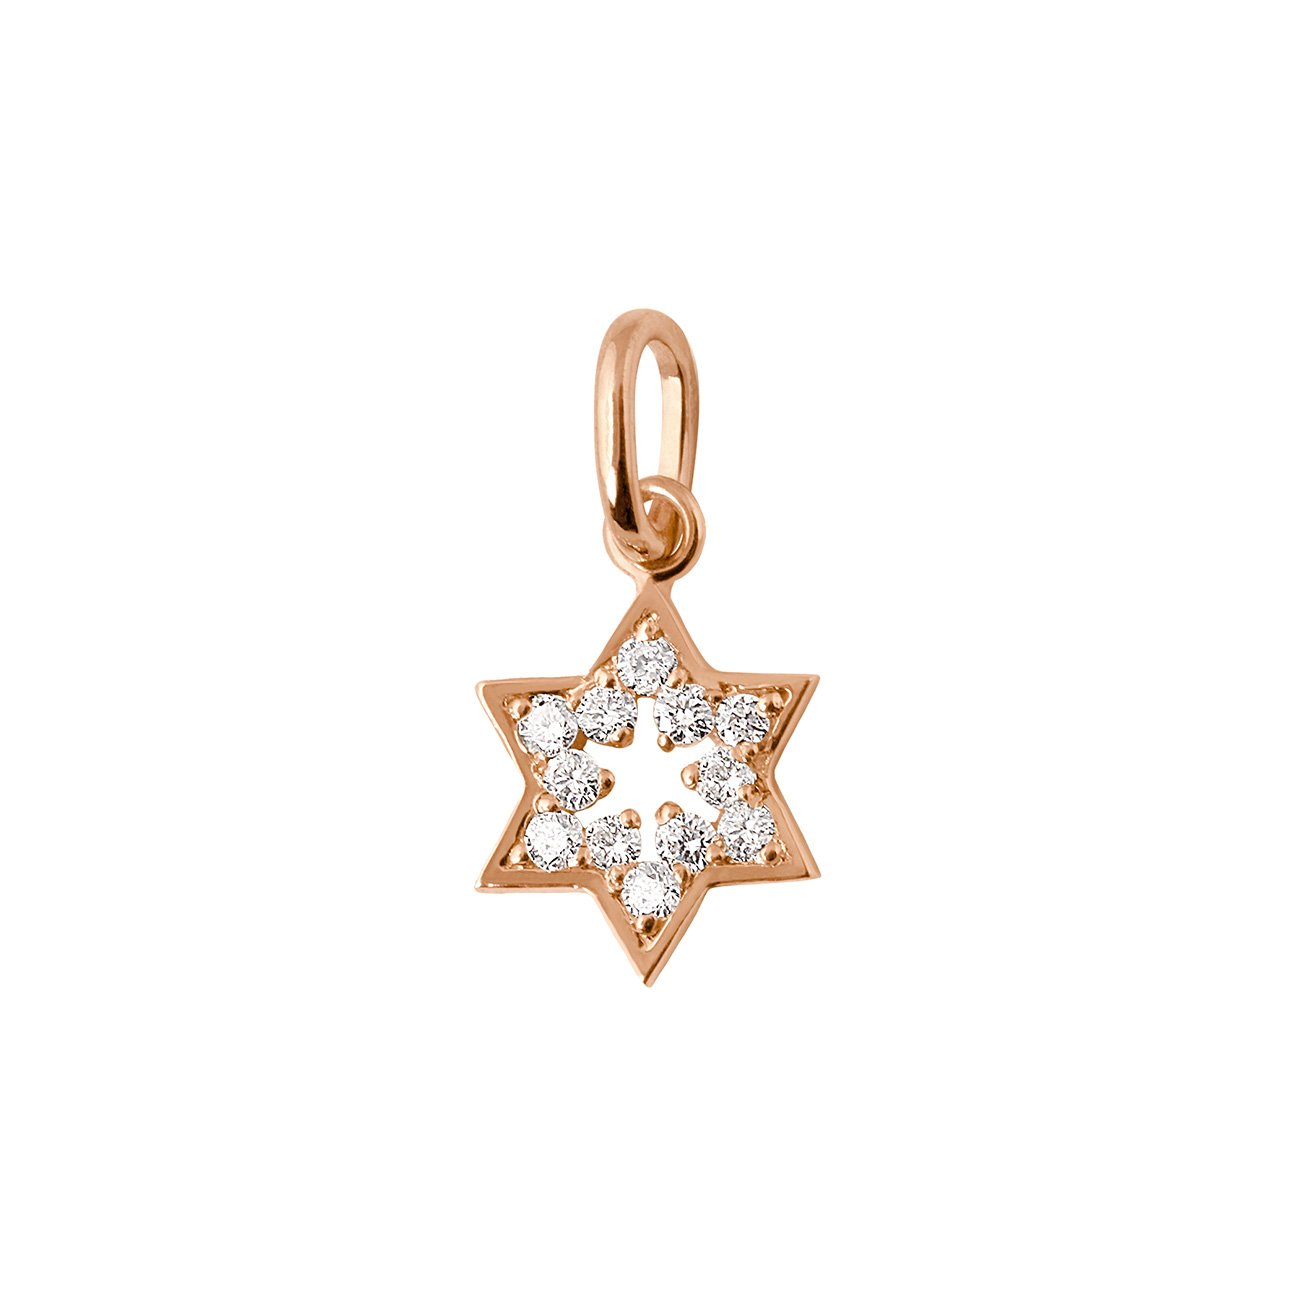 Gigi Clozeau - Pendentif Etoile de David, diamants, or rose